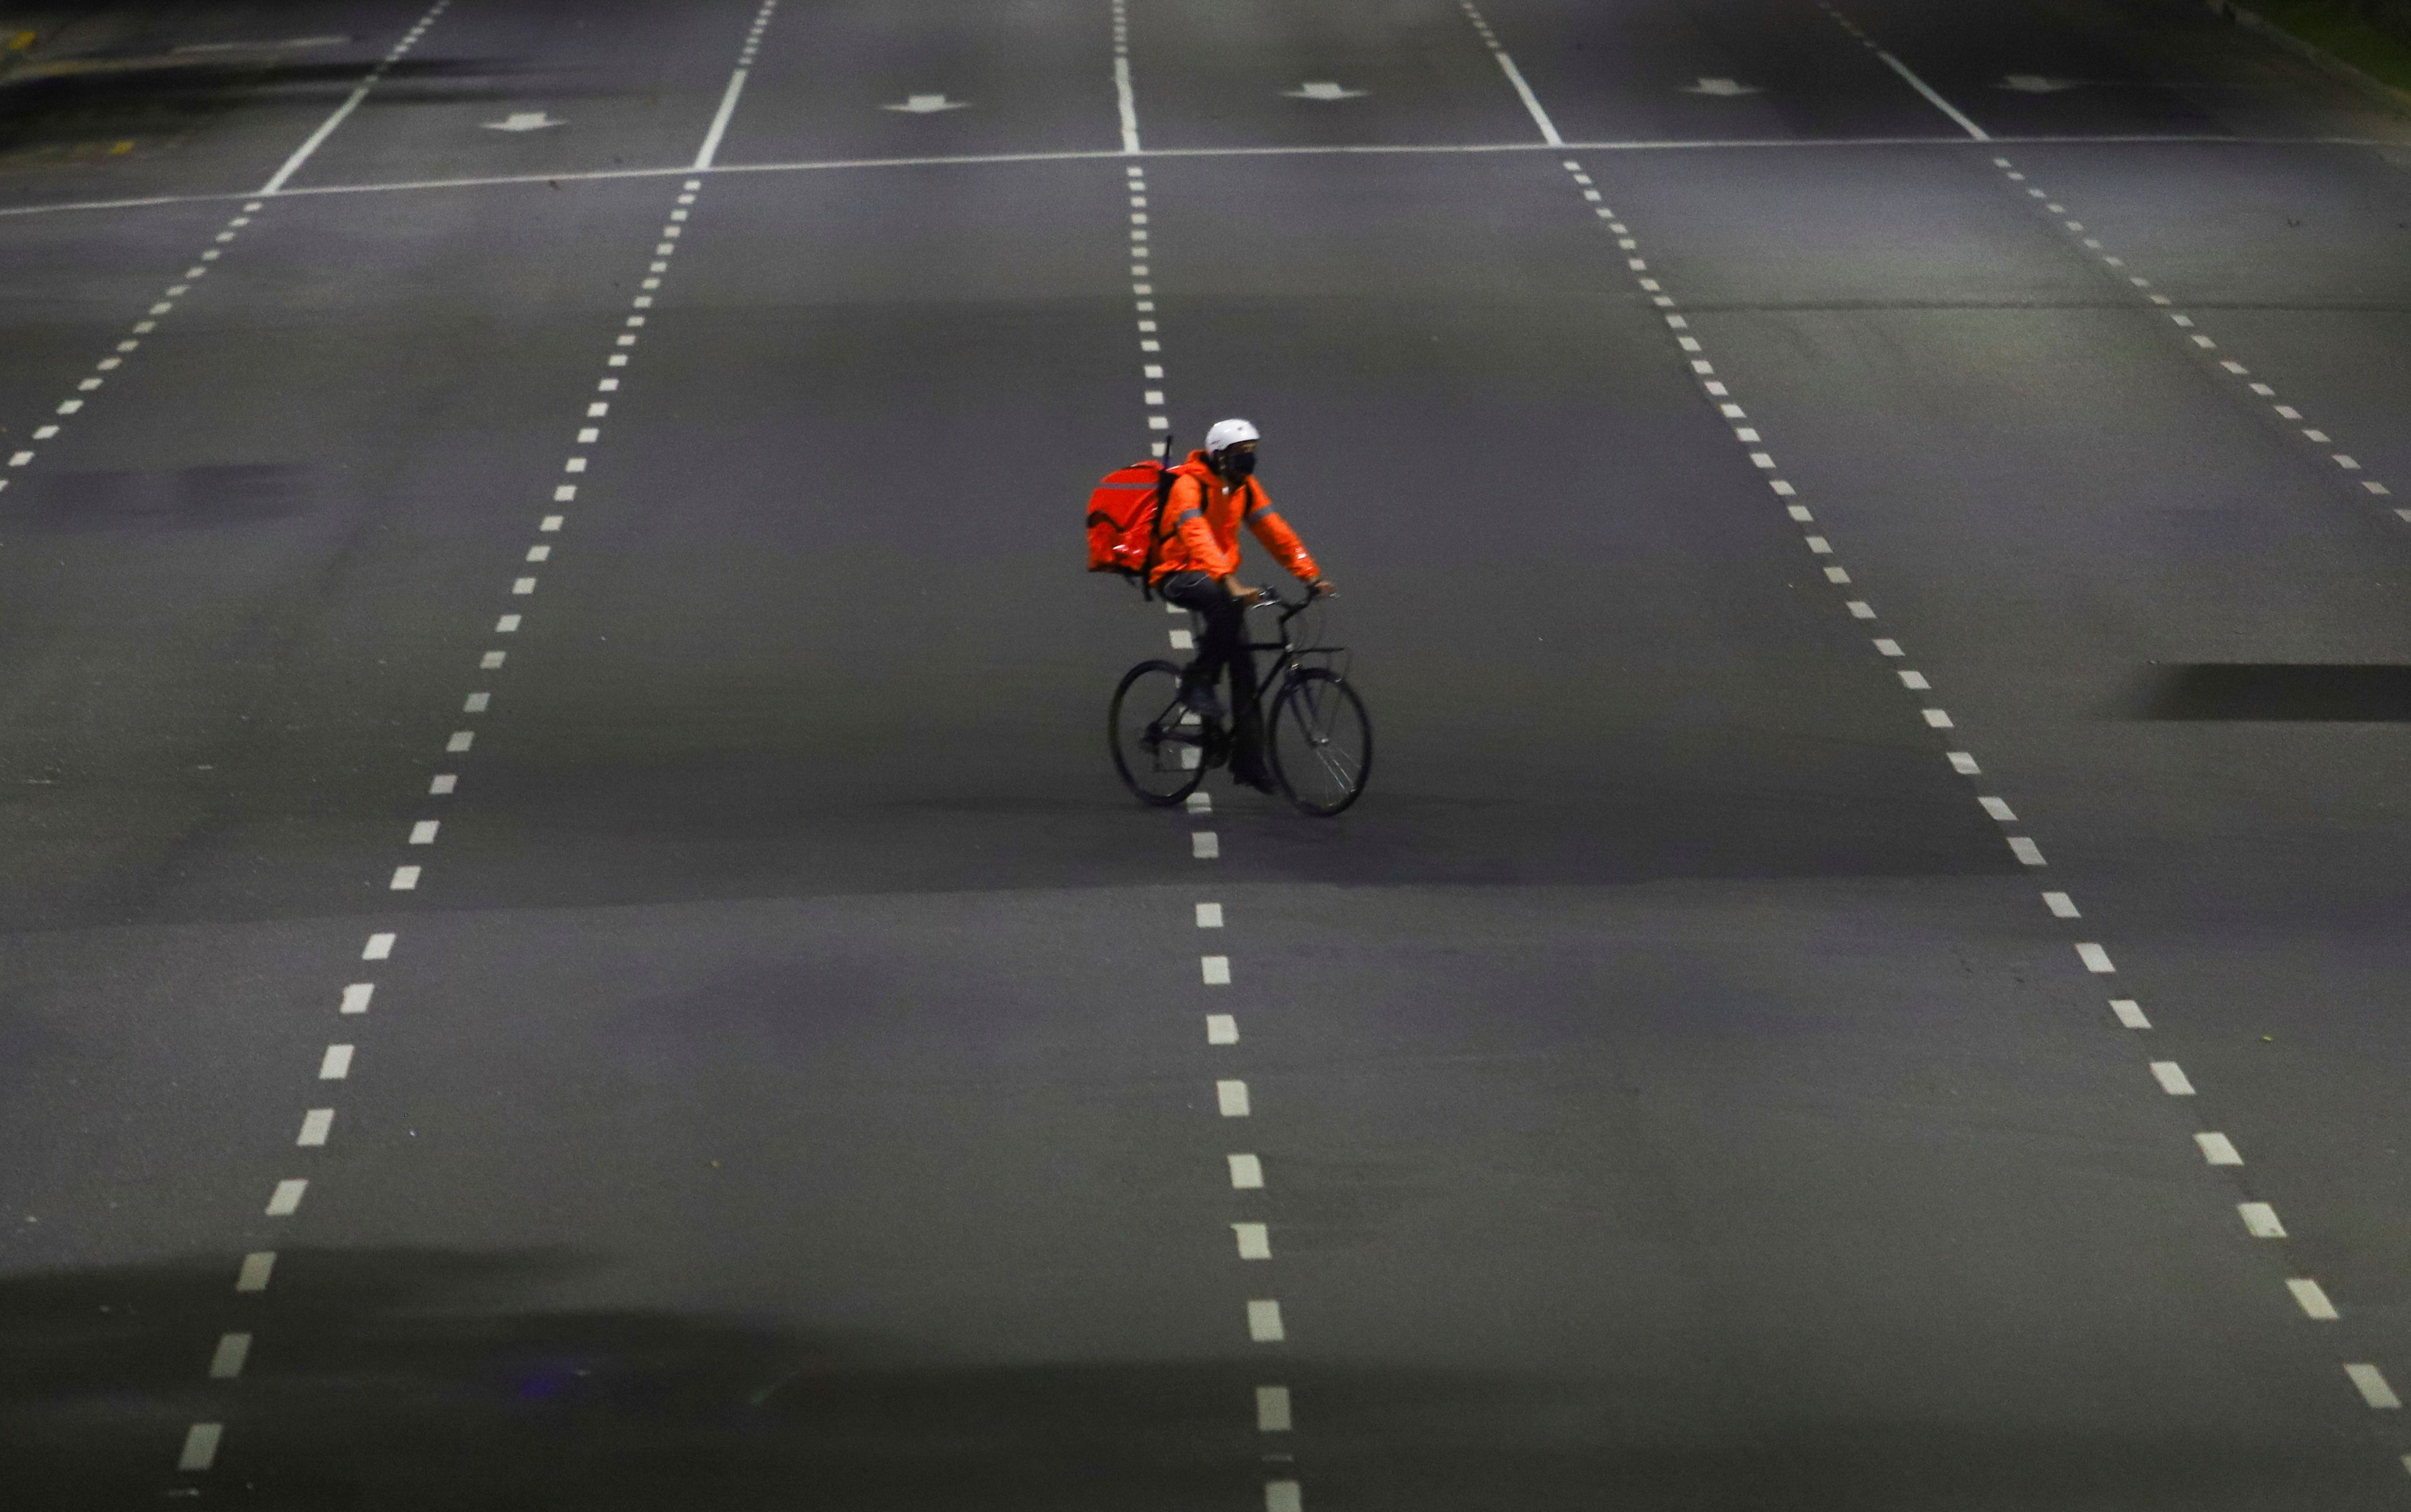 FILE PHOTO: A man who works for the mobile delivery app Rappi rides his bike on the street in Buenos Aires, Argentina April 10, 2020 REUTERS/Matias Baglietto/File Photo